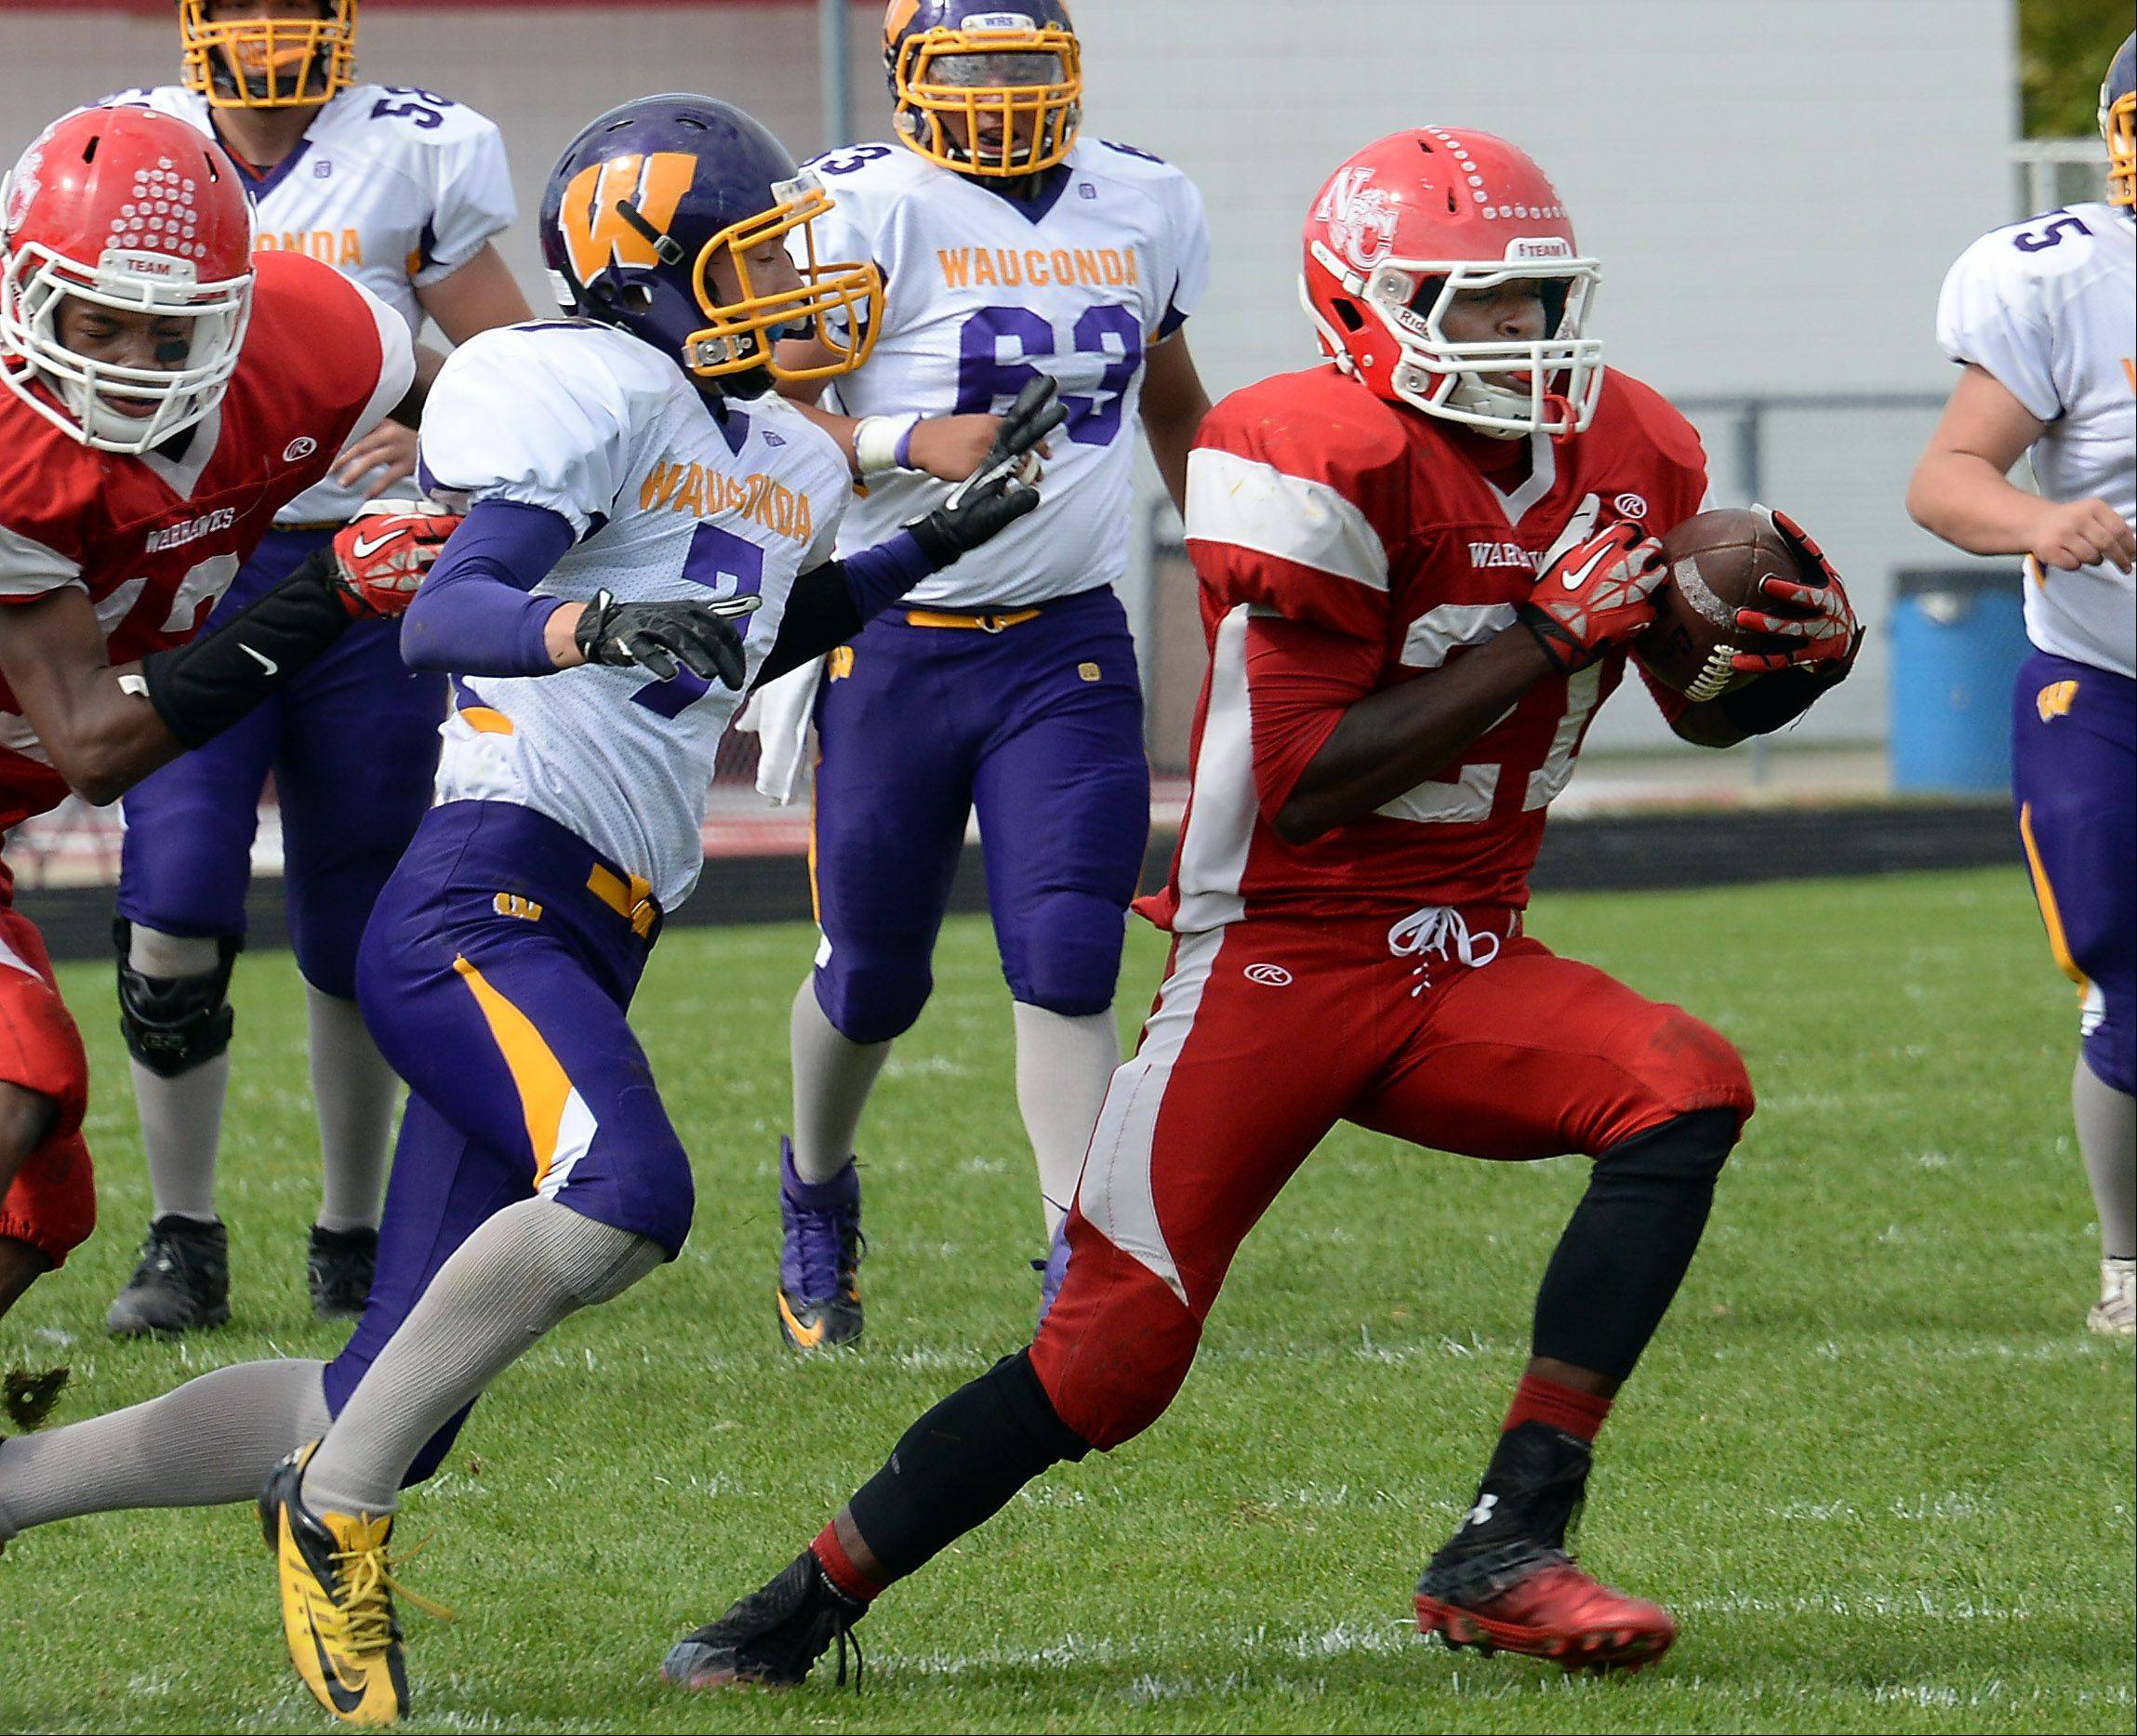 Wauconda's Joey Pausa is the intended receiver but North Chicago's Tazari Bryant picks it off for the interception in the first half at North Chicago on Saturday.